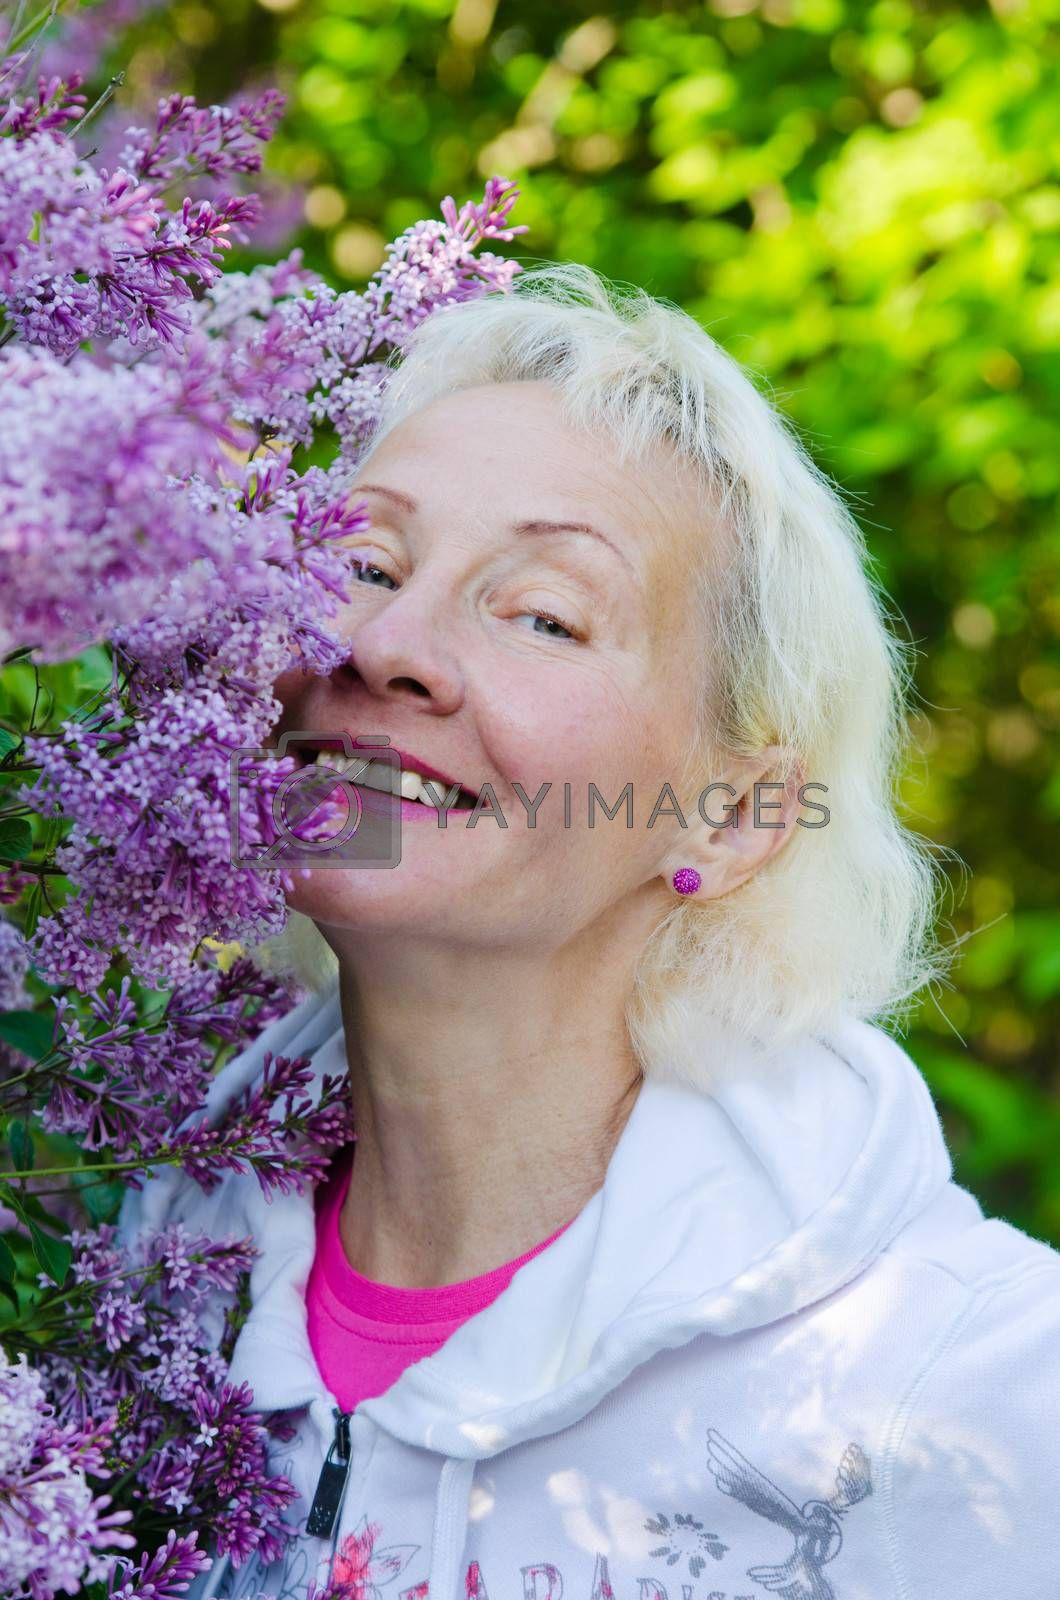 Royalty free image of Portrait of a woman from a Bush blooming lilac  by breeze09